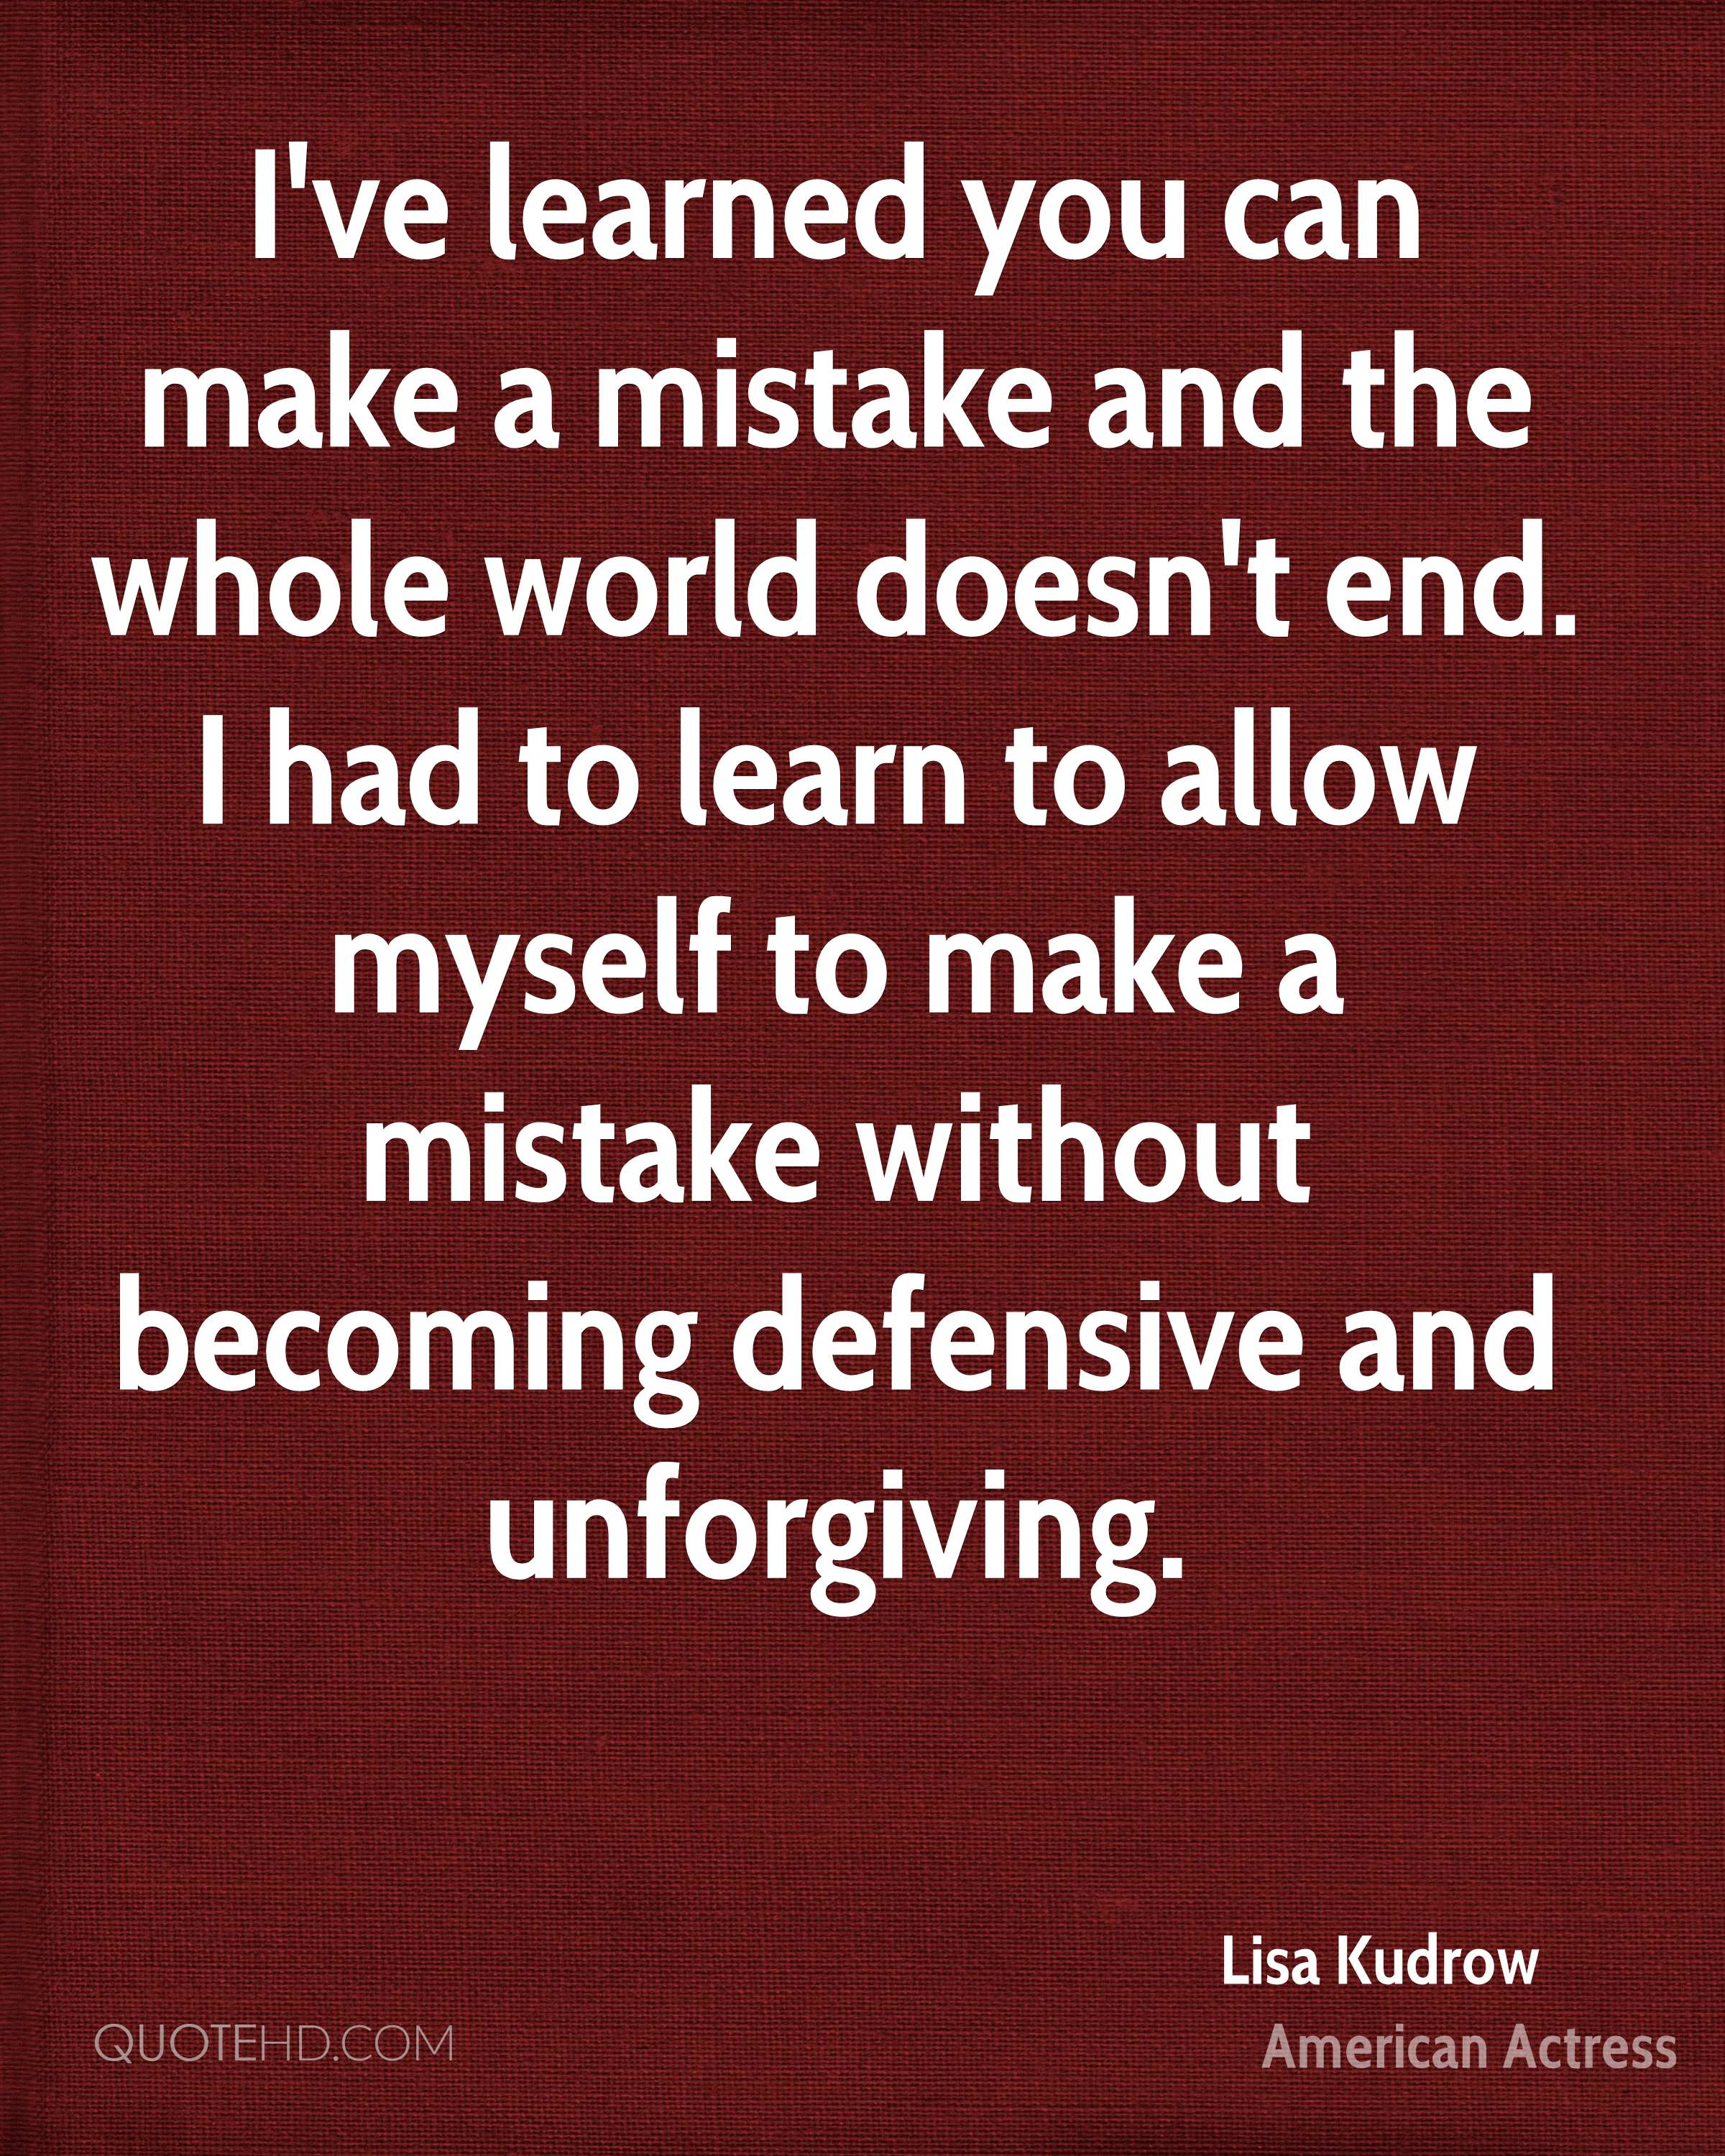 I've learned you can make a mistake and the whole world doesn't end. I had to learn to allow myself to make a mistake without becoming defensive and unforgiving.